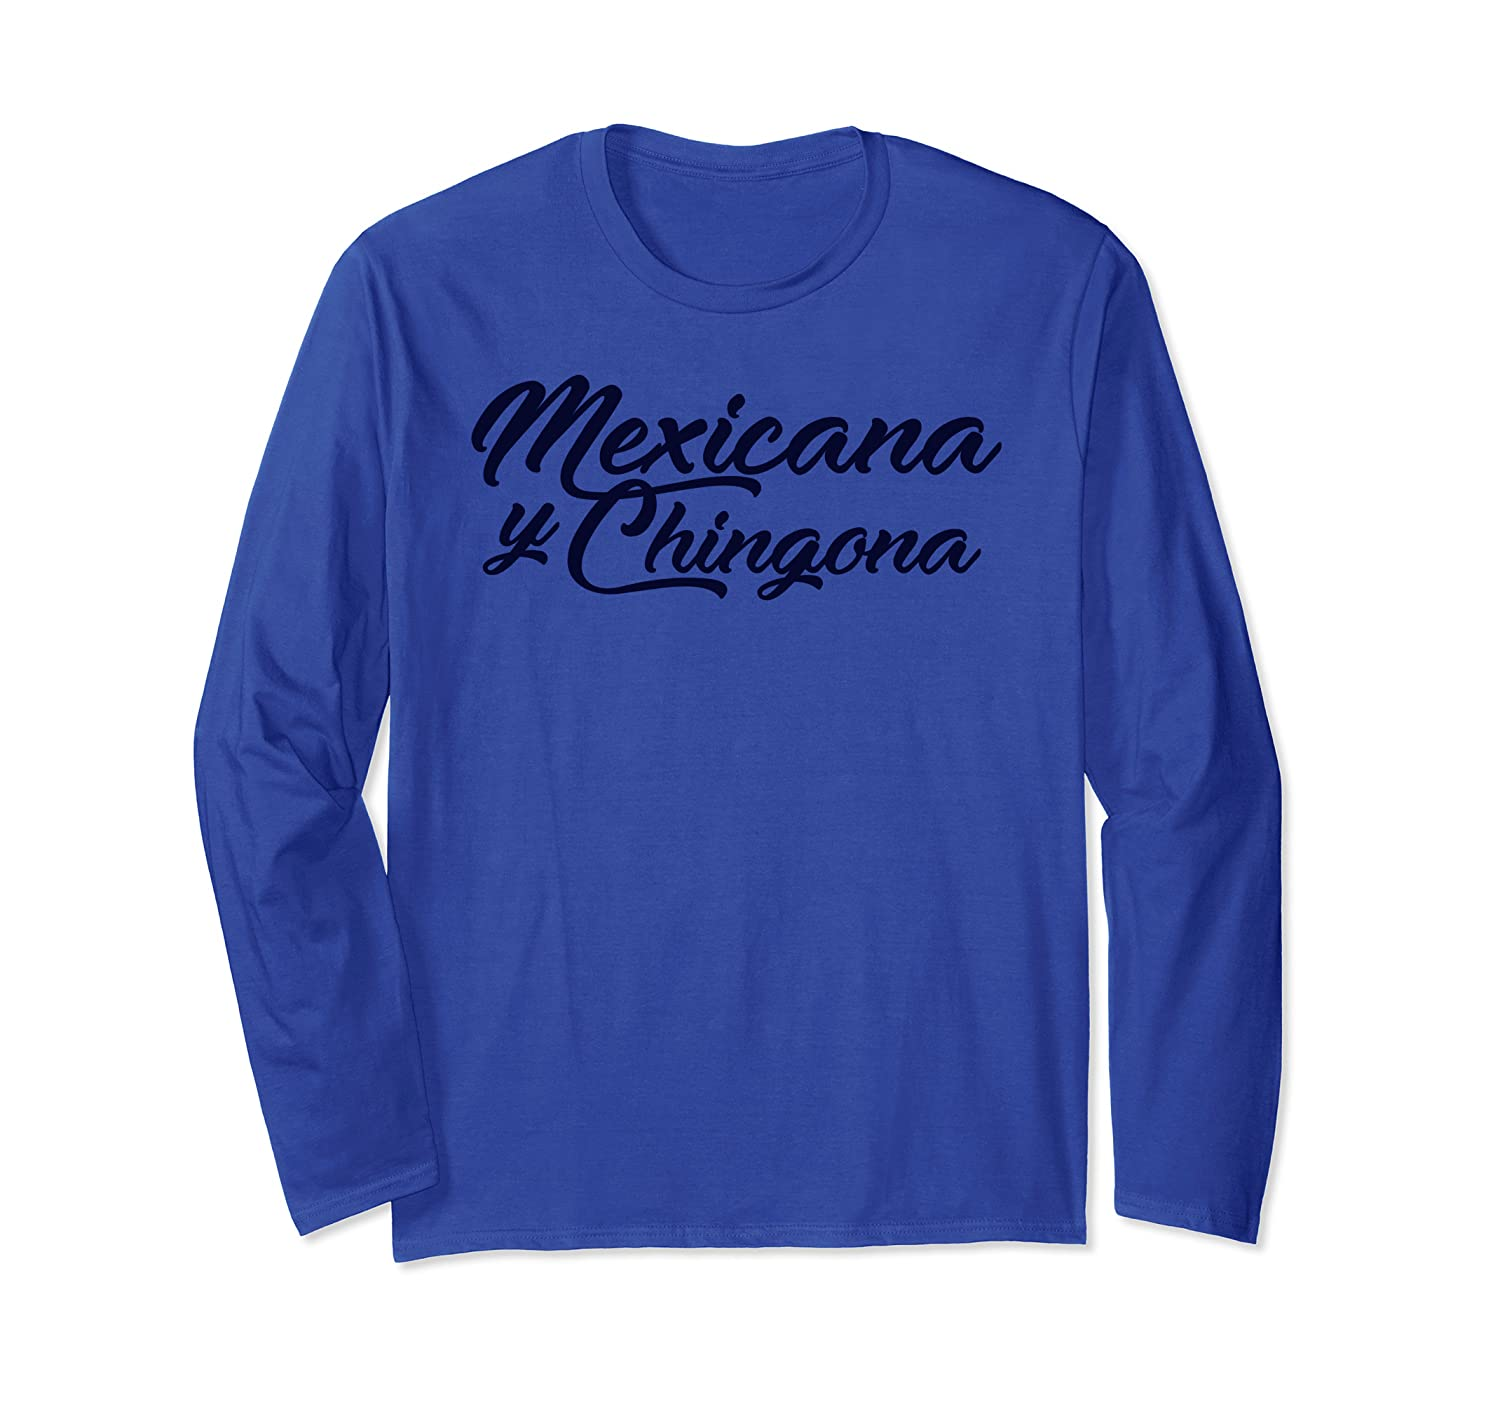 Mexicana Y Chingona Funny Mexican For Women Shirts